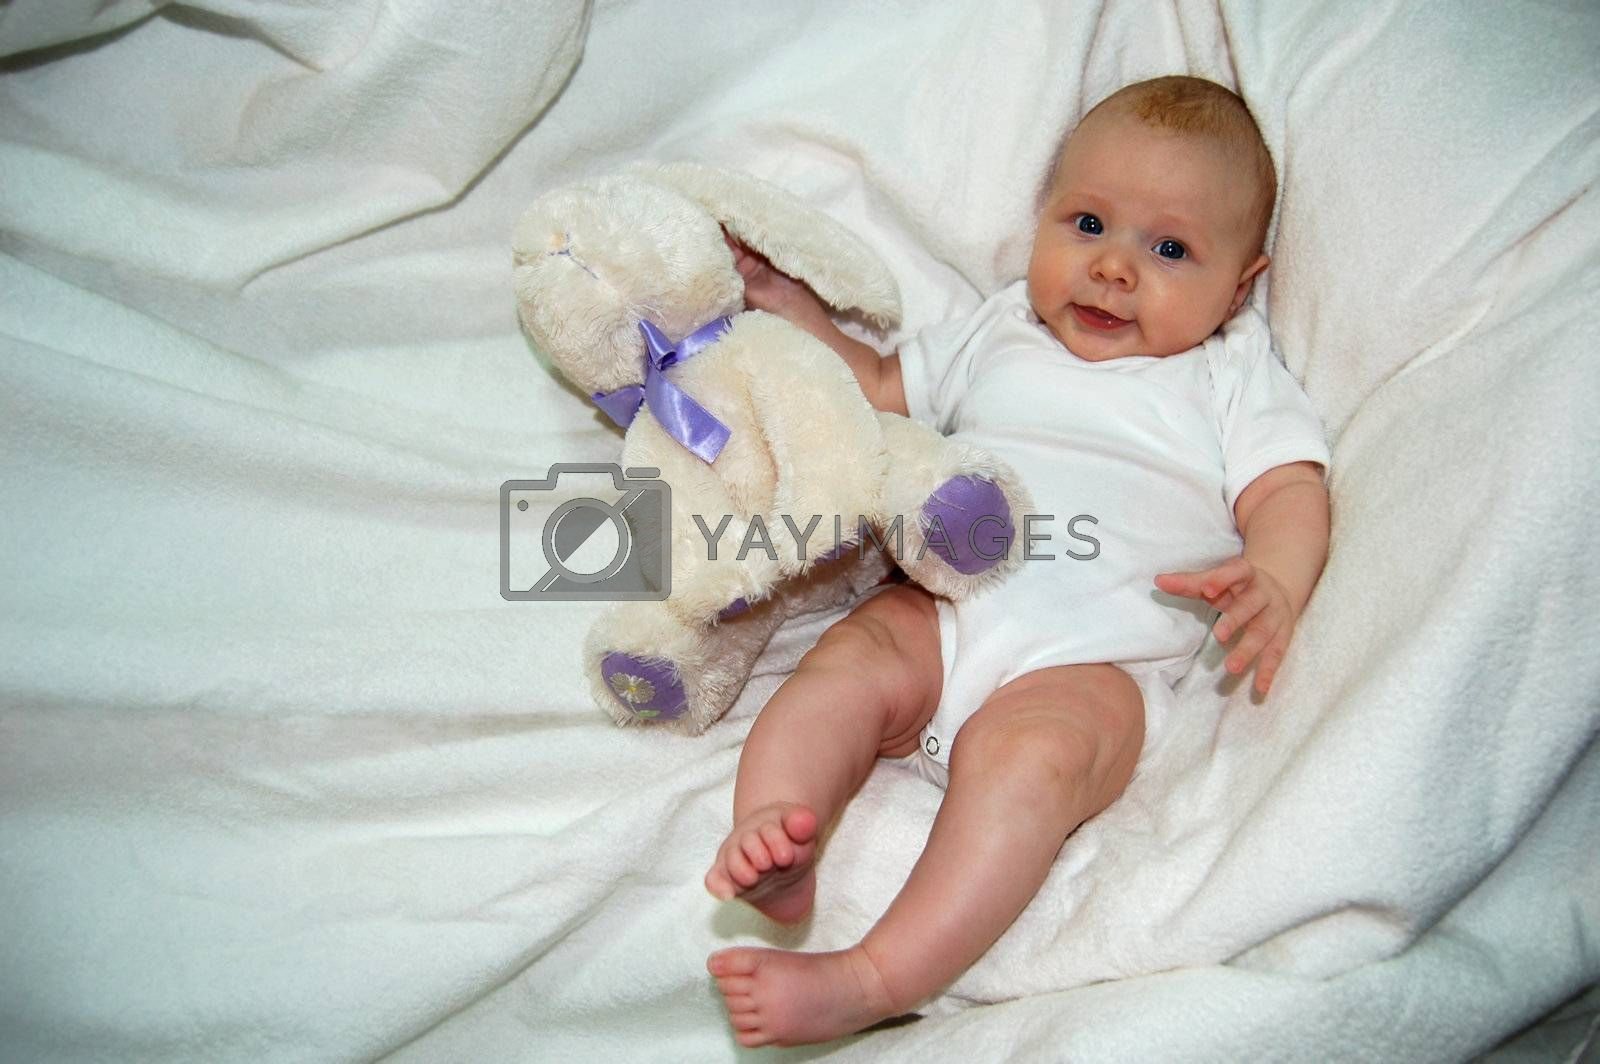 Lovely baby with  blue eyes, palming bunny - toy